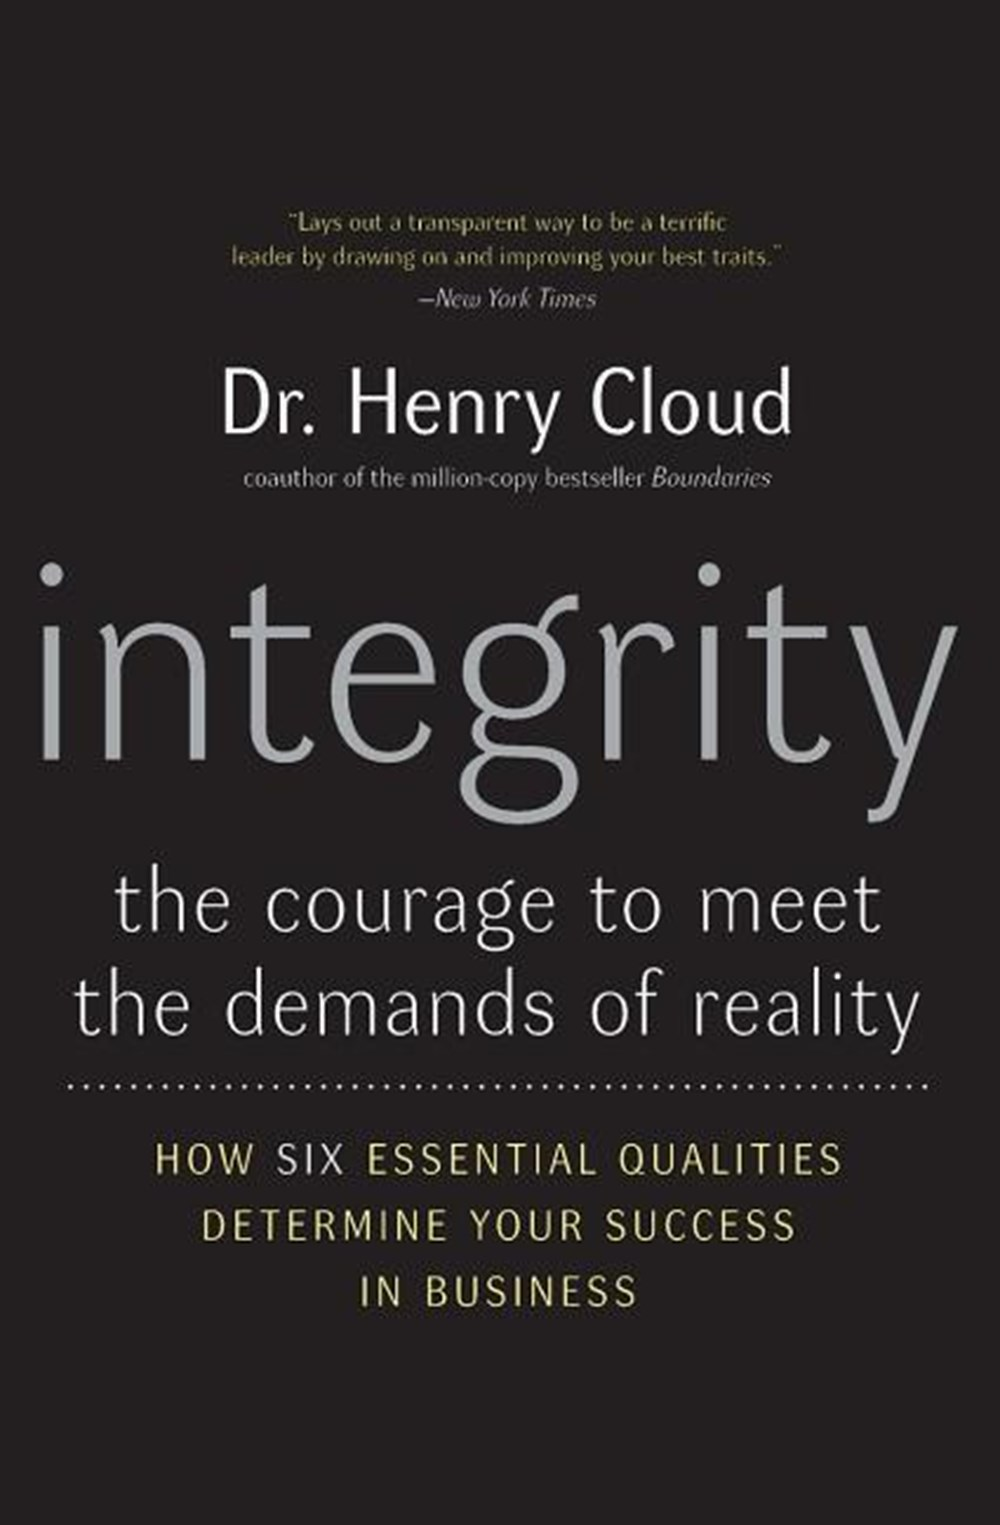 Integrity The Courage to Meet the Demands of Reality